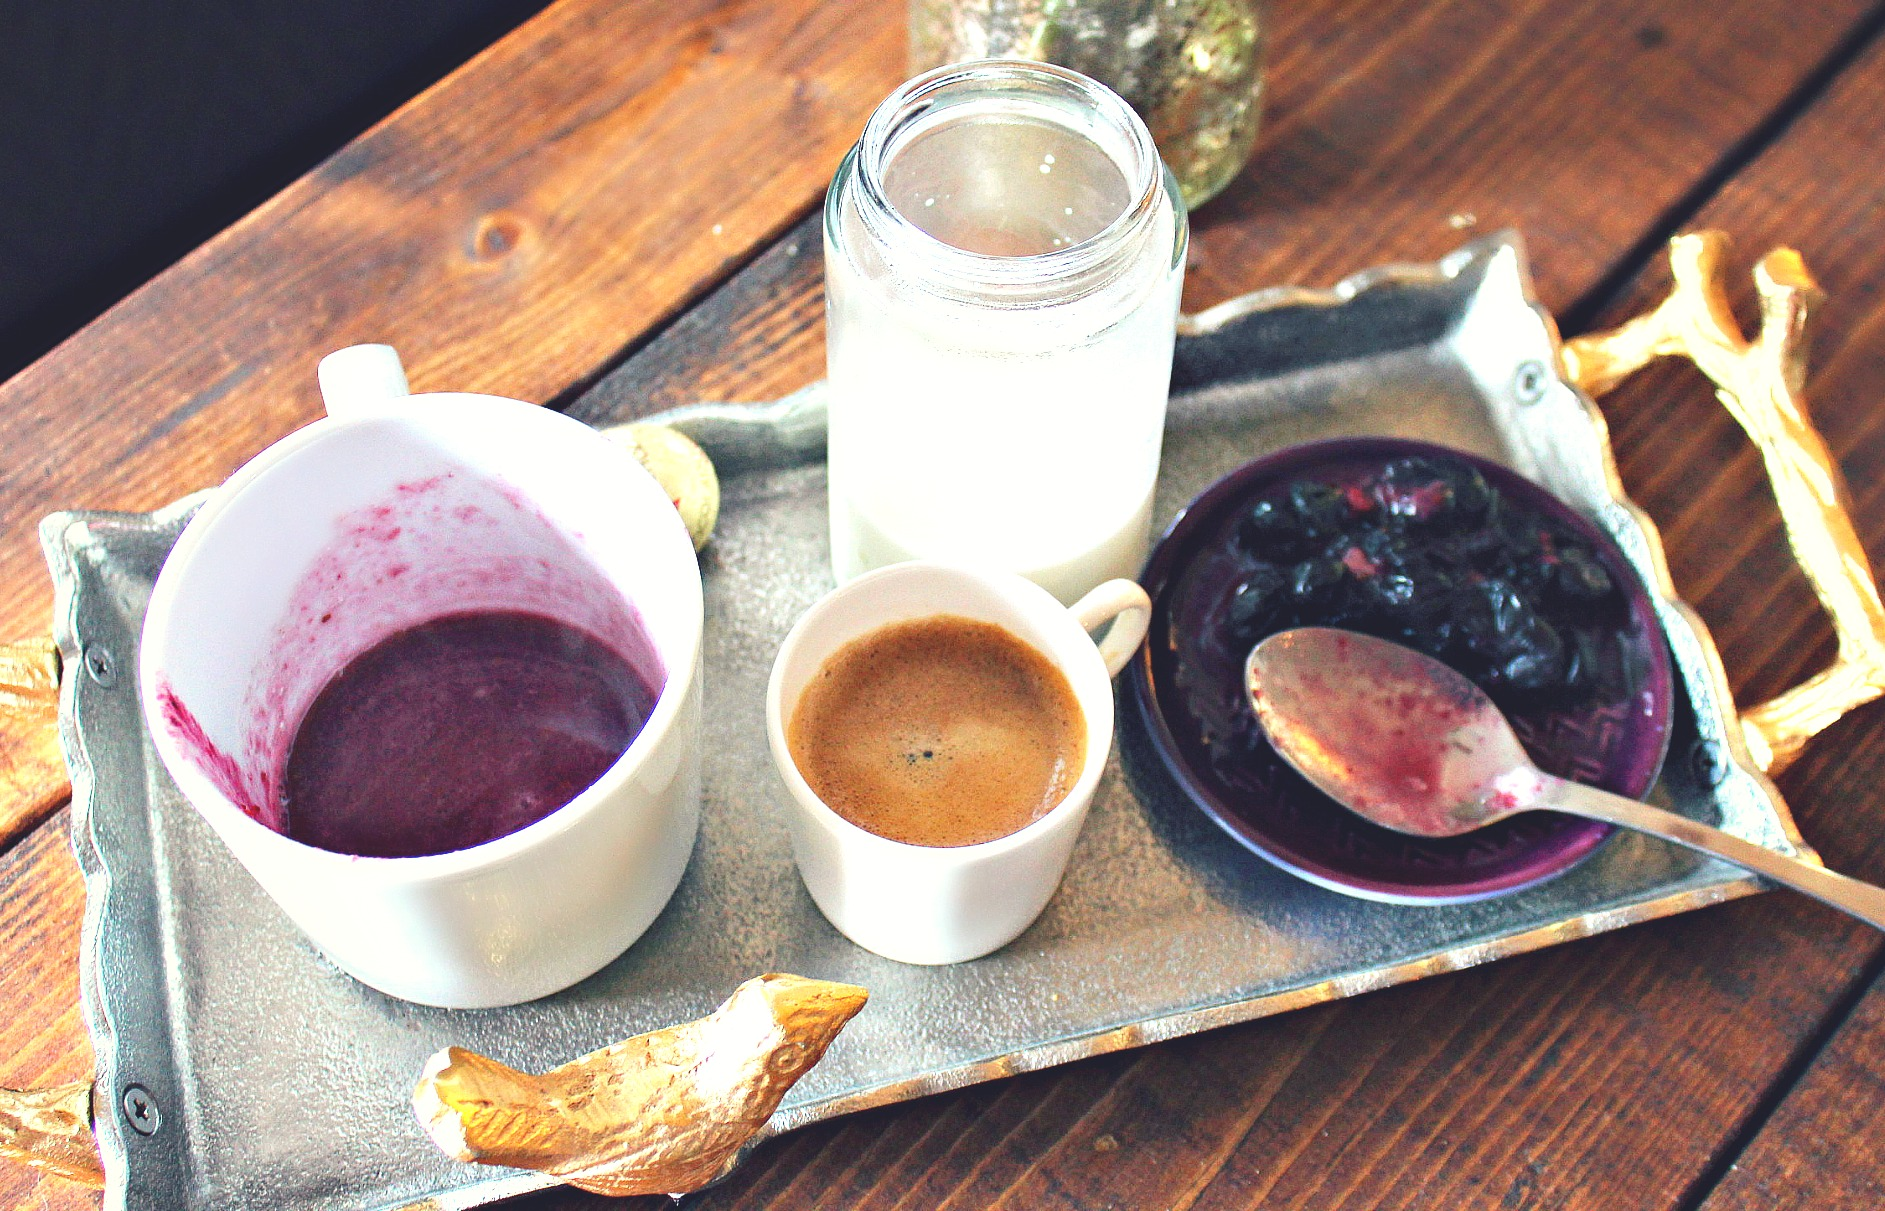 Vegan Blueberry Almond Milk Latte